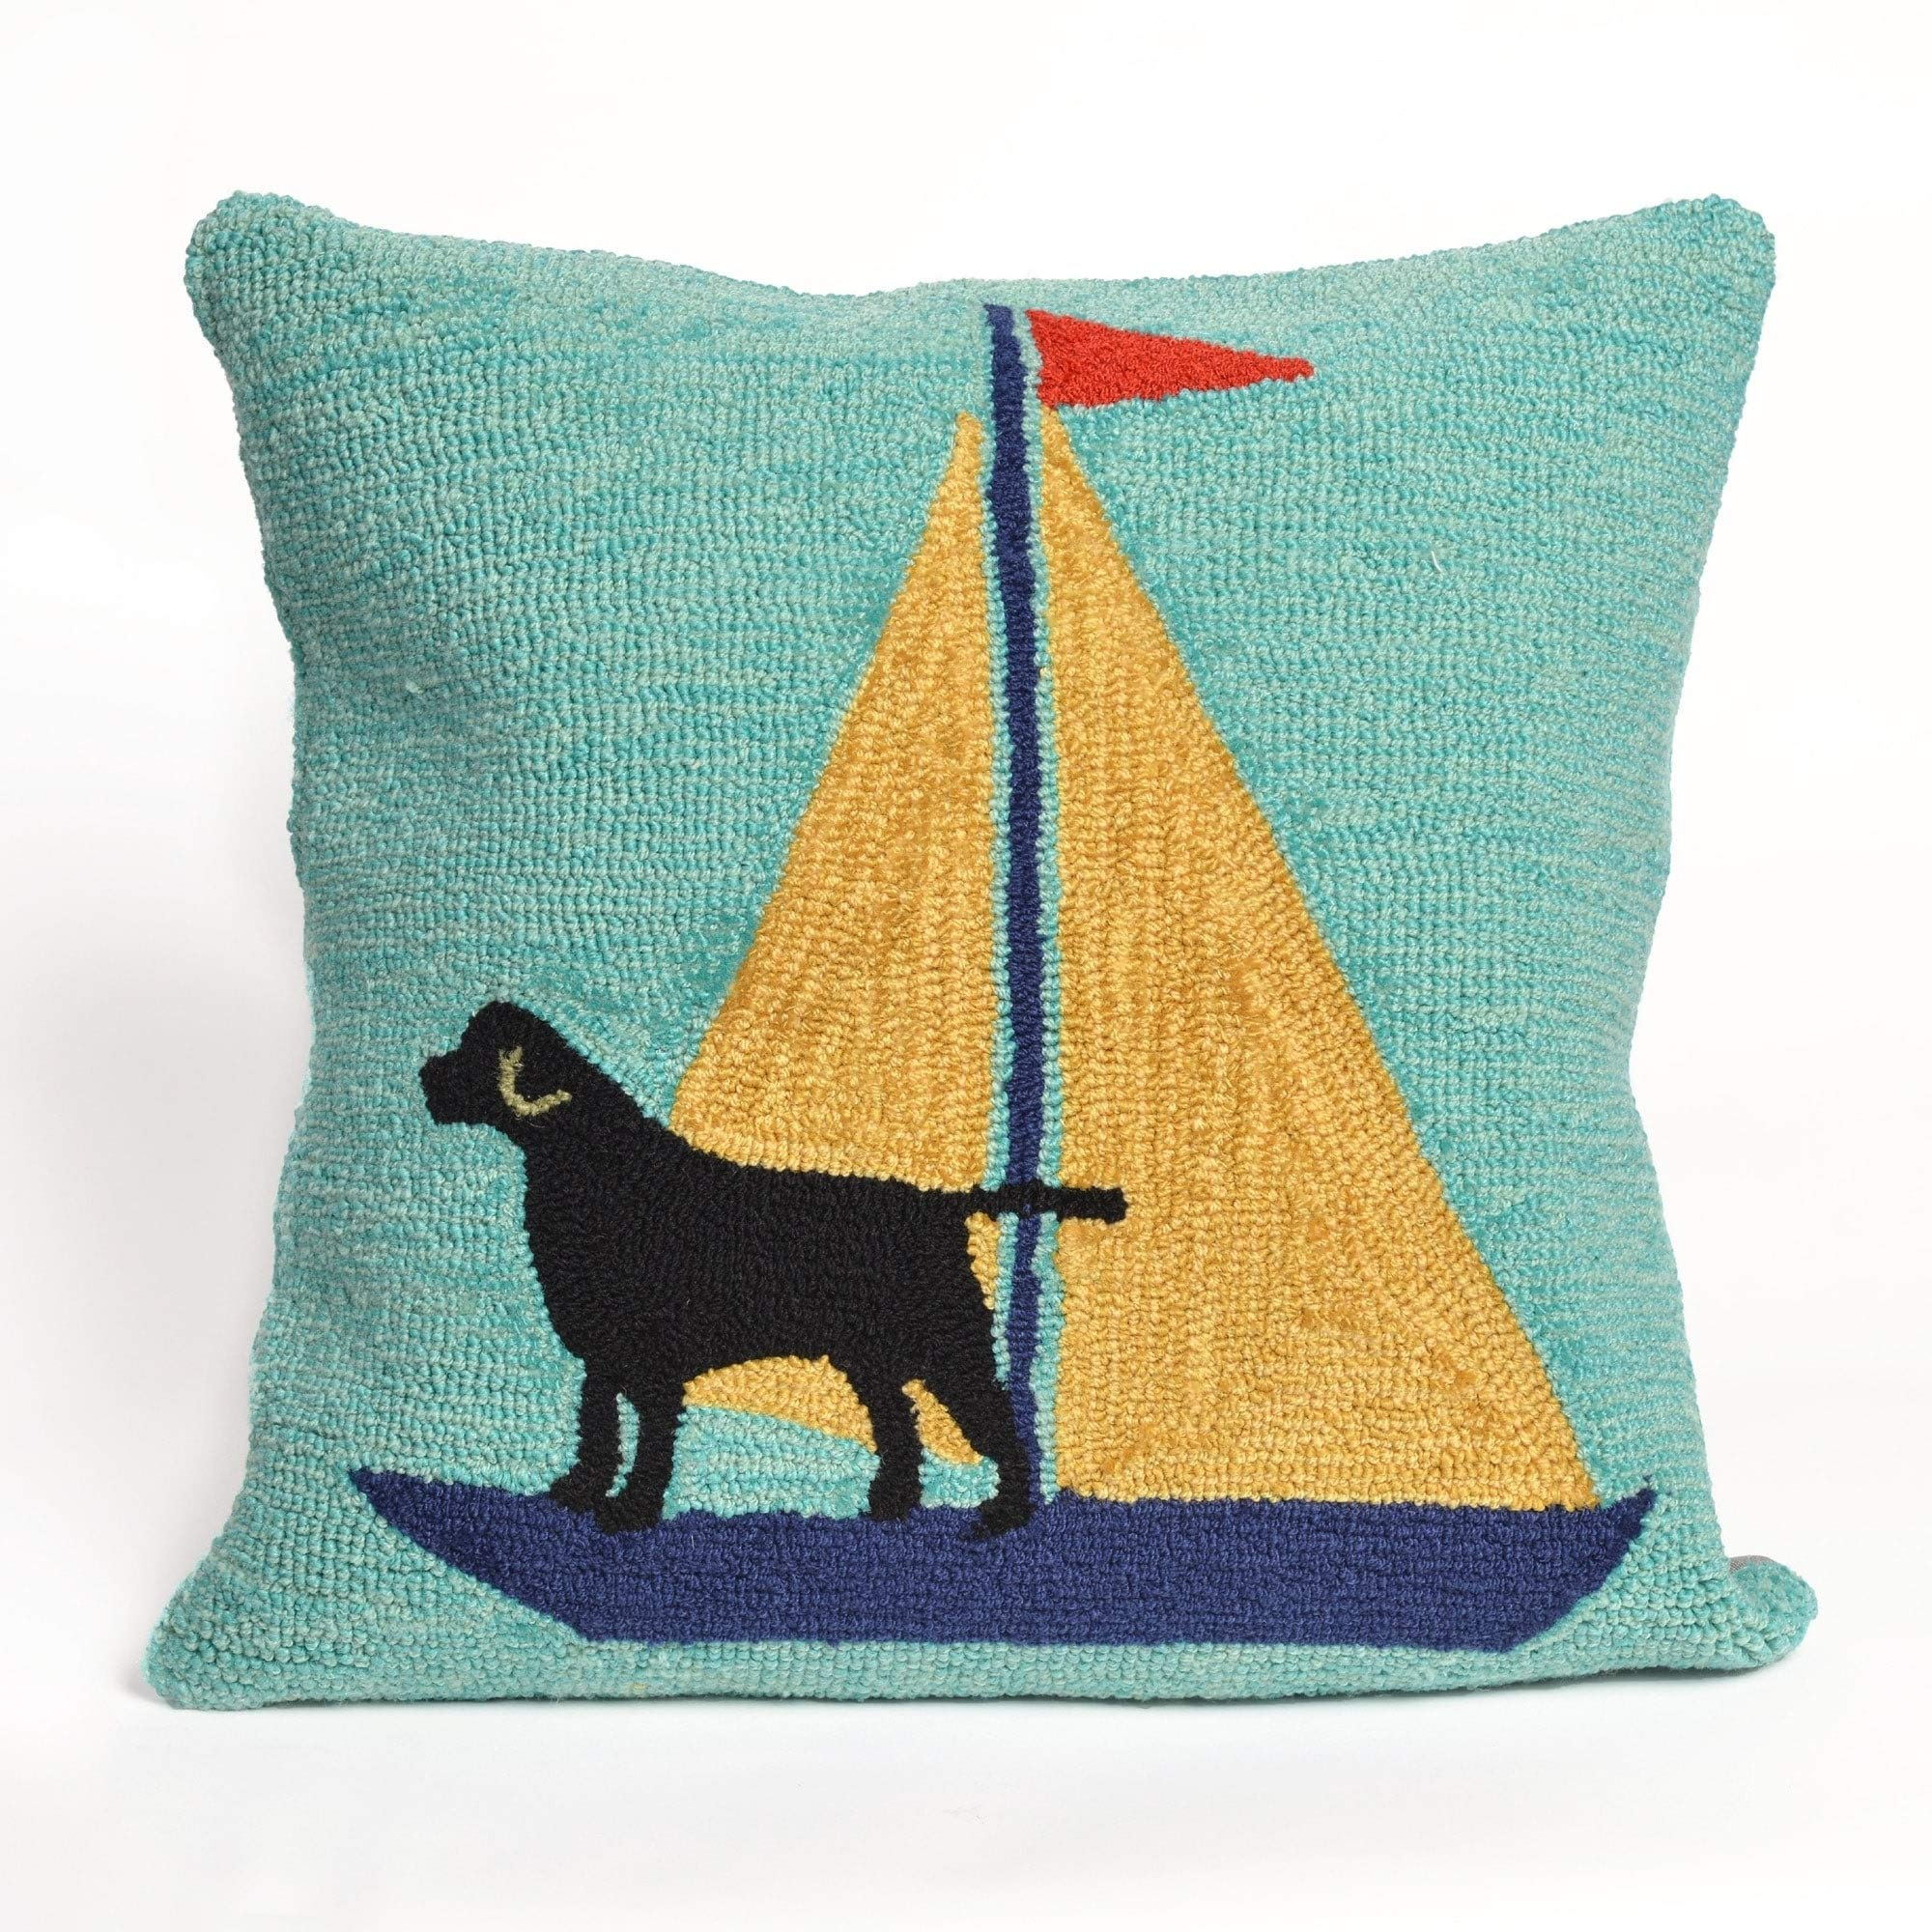 Trans Ocean Imports Co. Canine Captain Pillow (18 x 18)